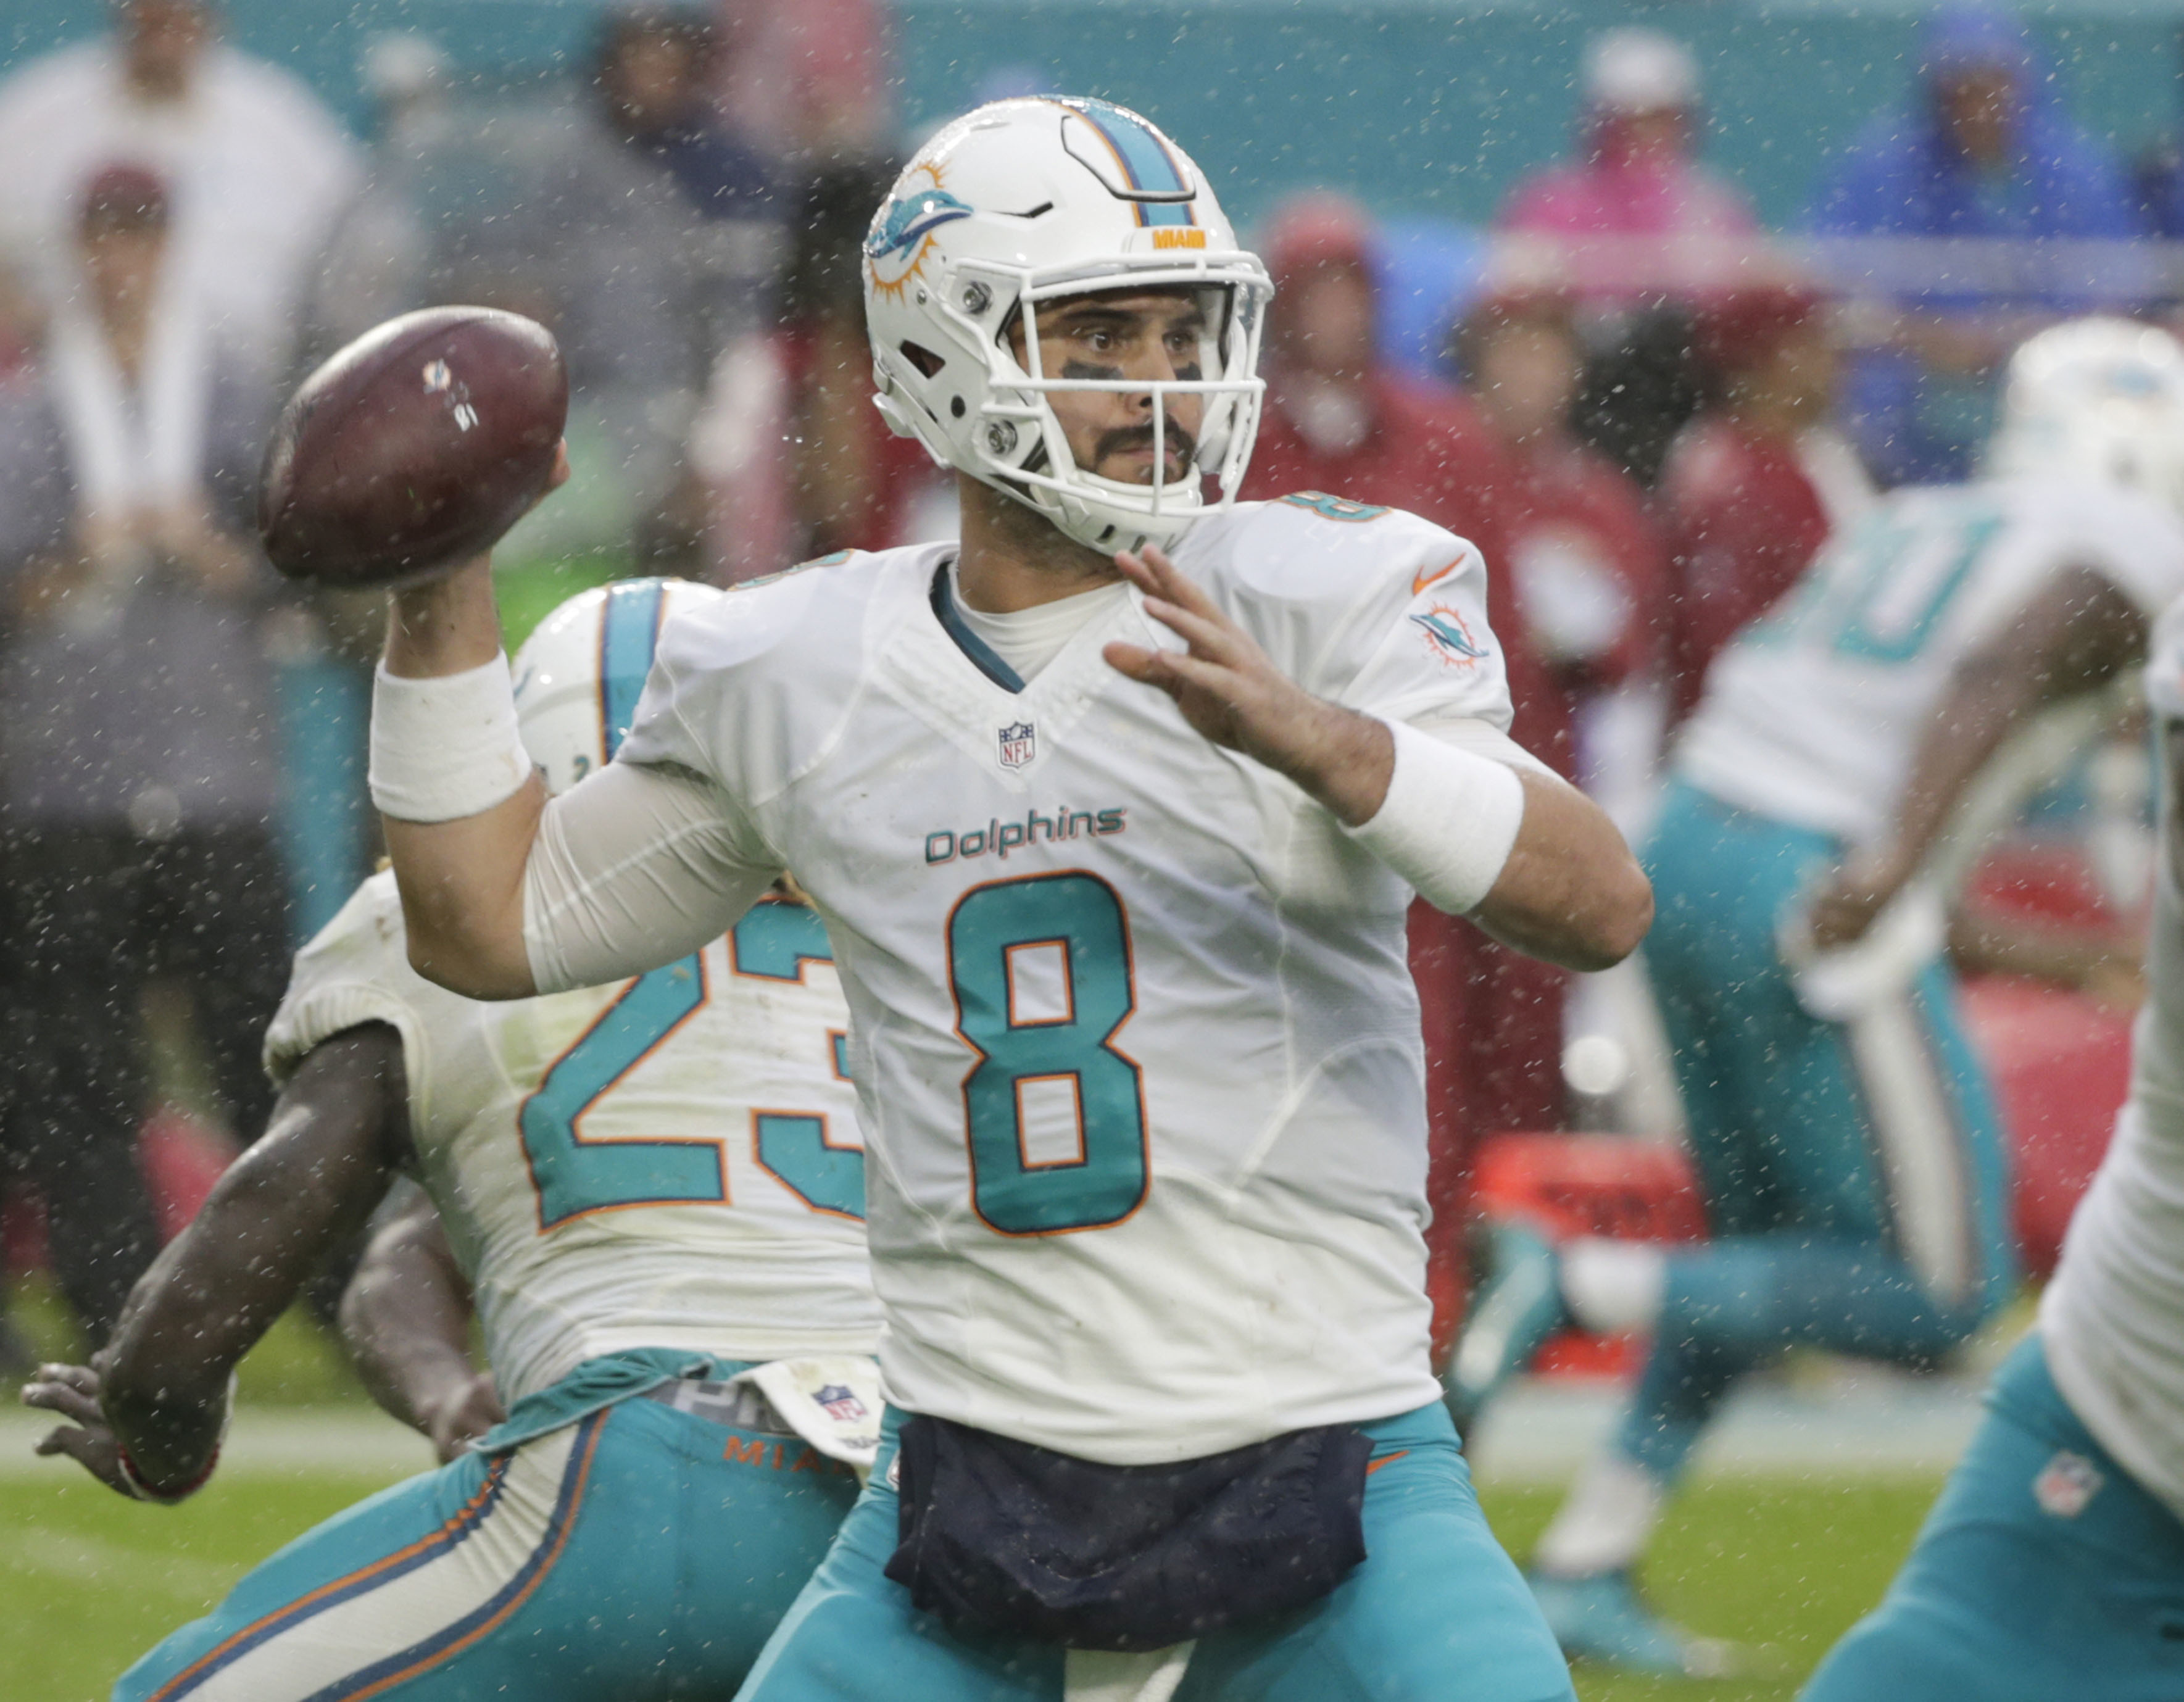 FILE - In this Sunday, Dec. 11, 2016 file photo, Miami Dolphins quarterback Matt Moore (8) looks to pass, during the second half of an NFL football game against the Arizona Cardinals in Miami Gardens, Fla. Matt Moore last started an NFL game in the 2011 s